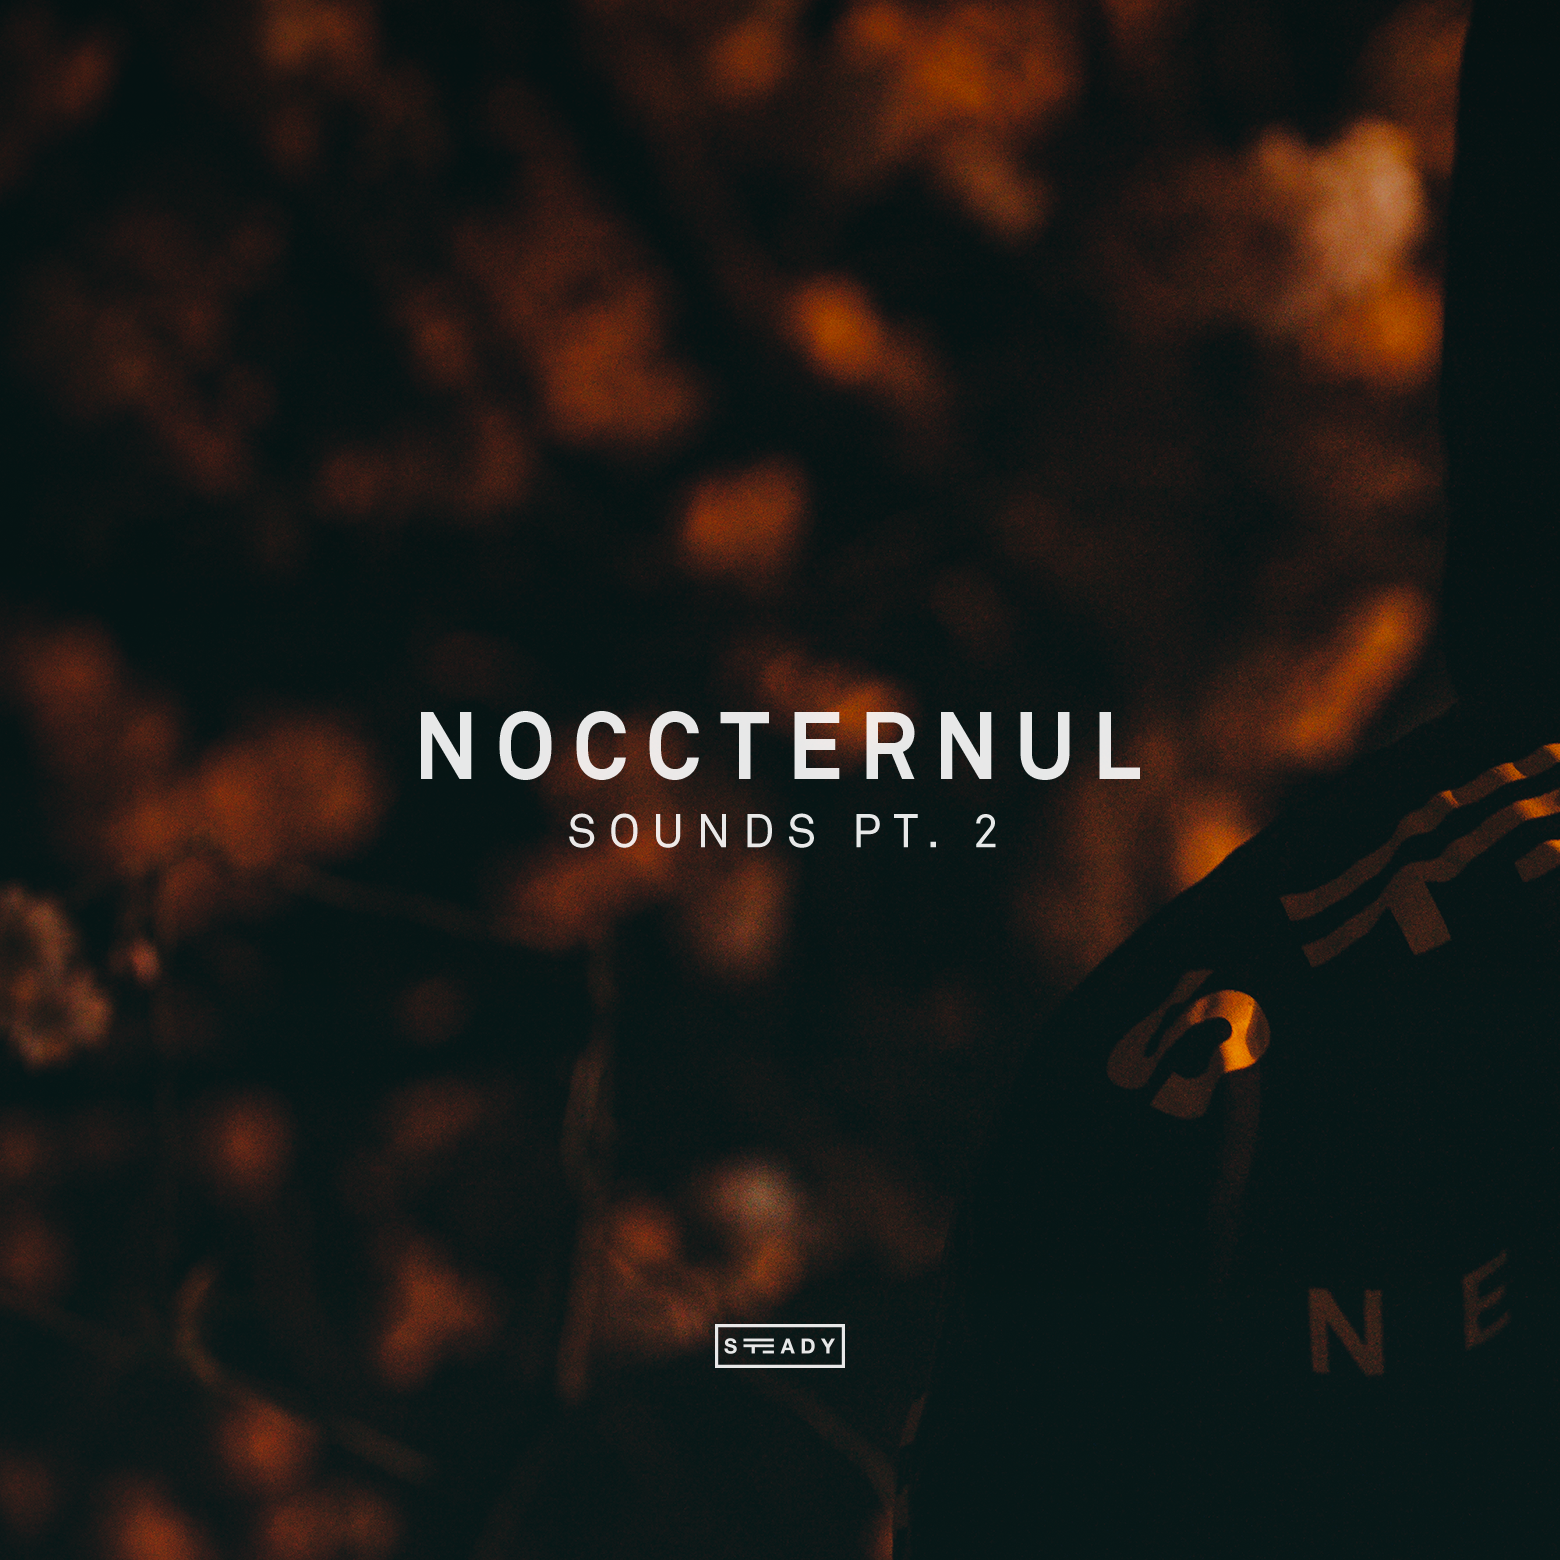 STEADY BUMPIN': 'NOCCTERNUL' SOUNDS PT.2